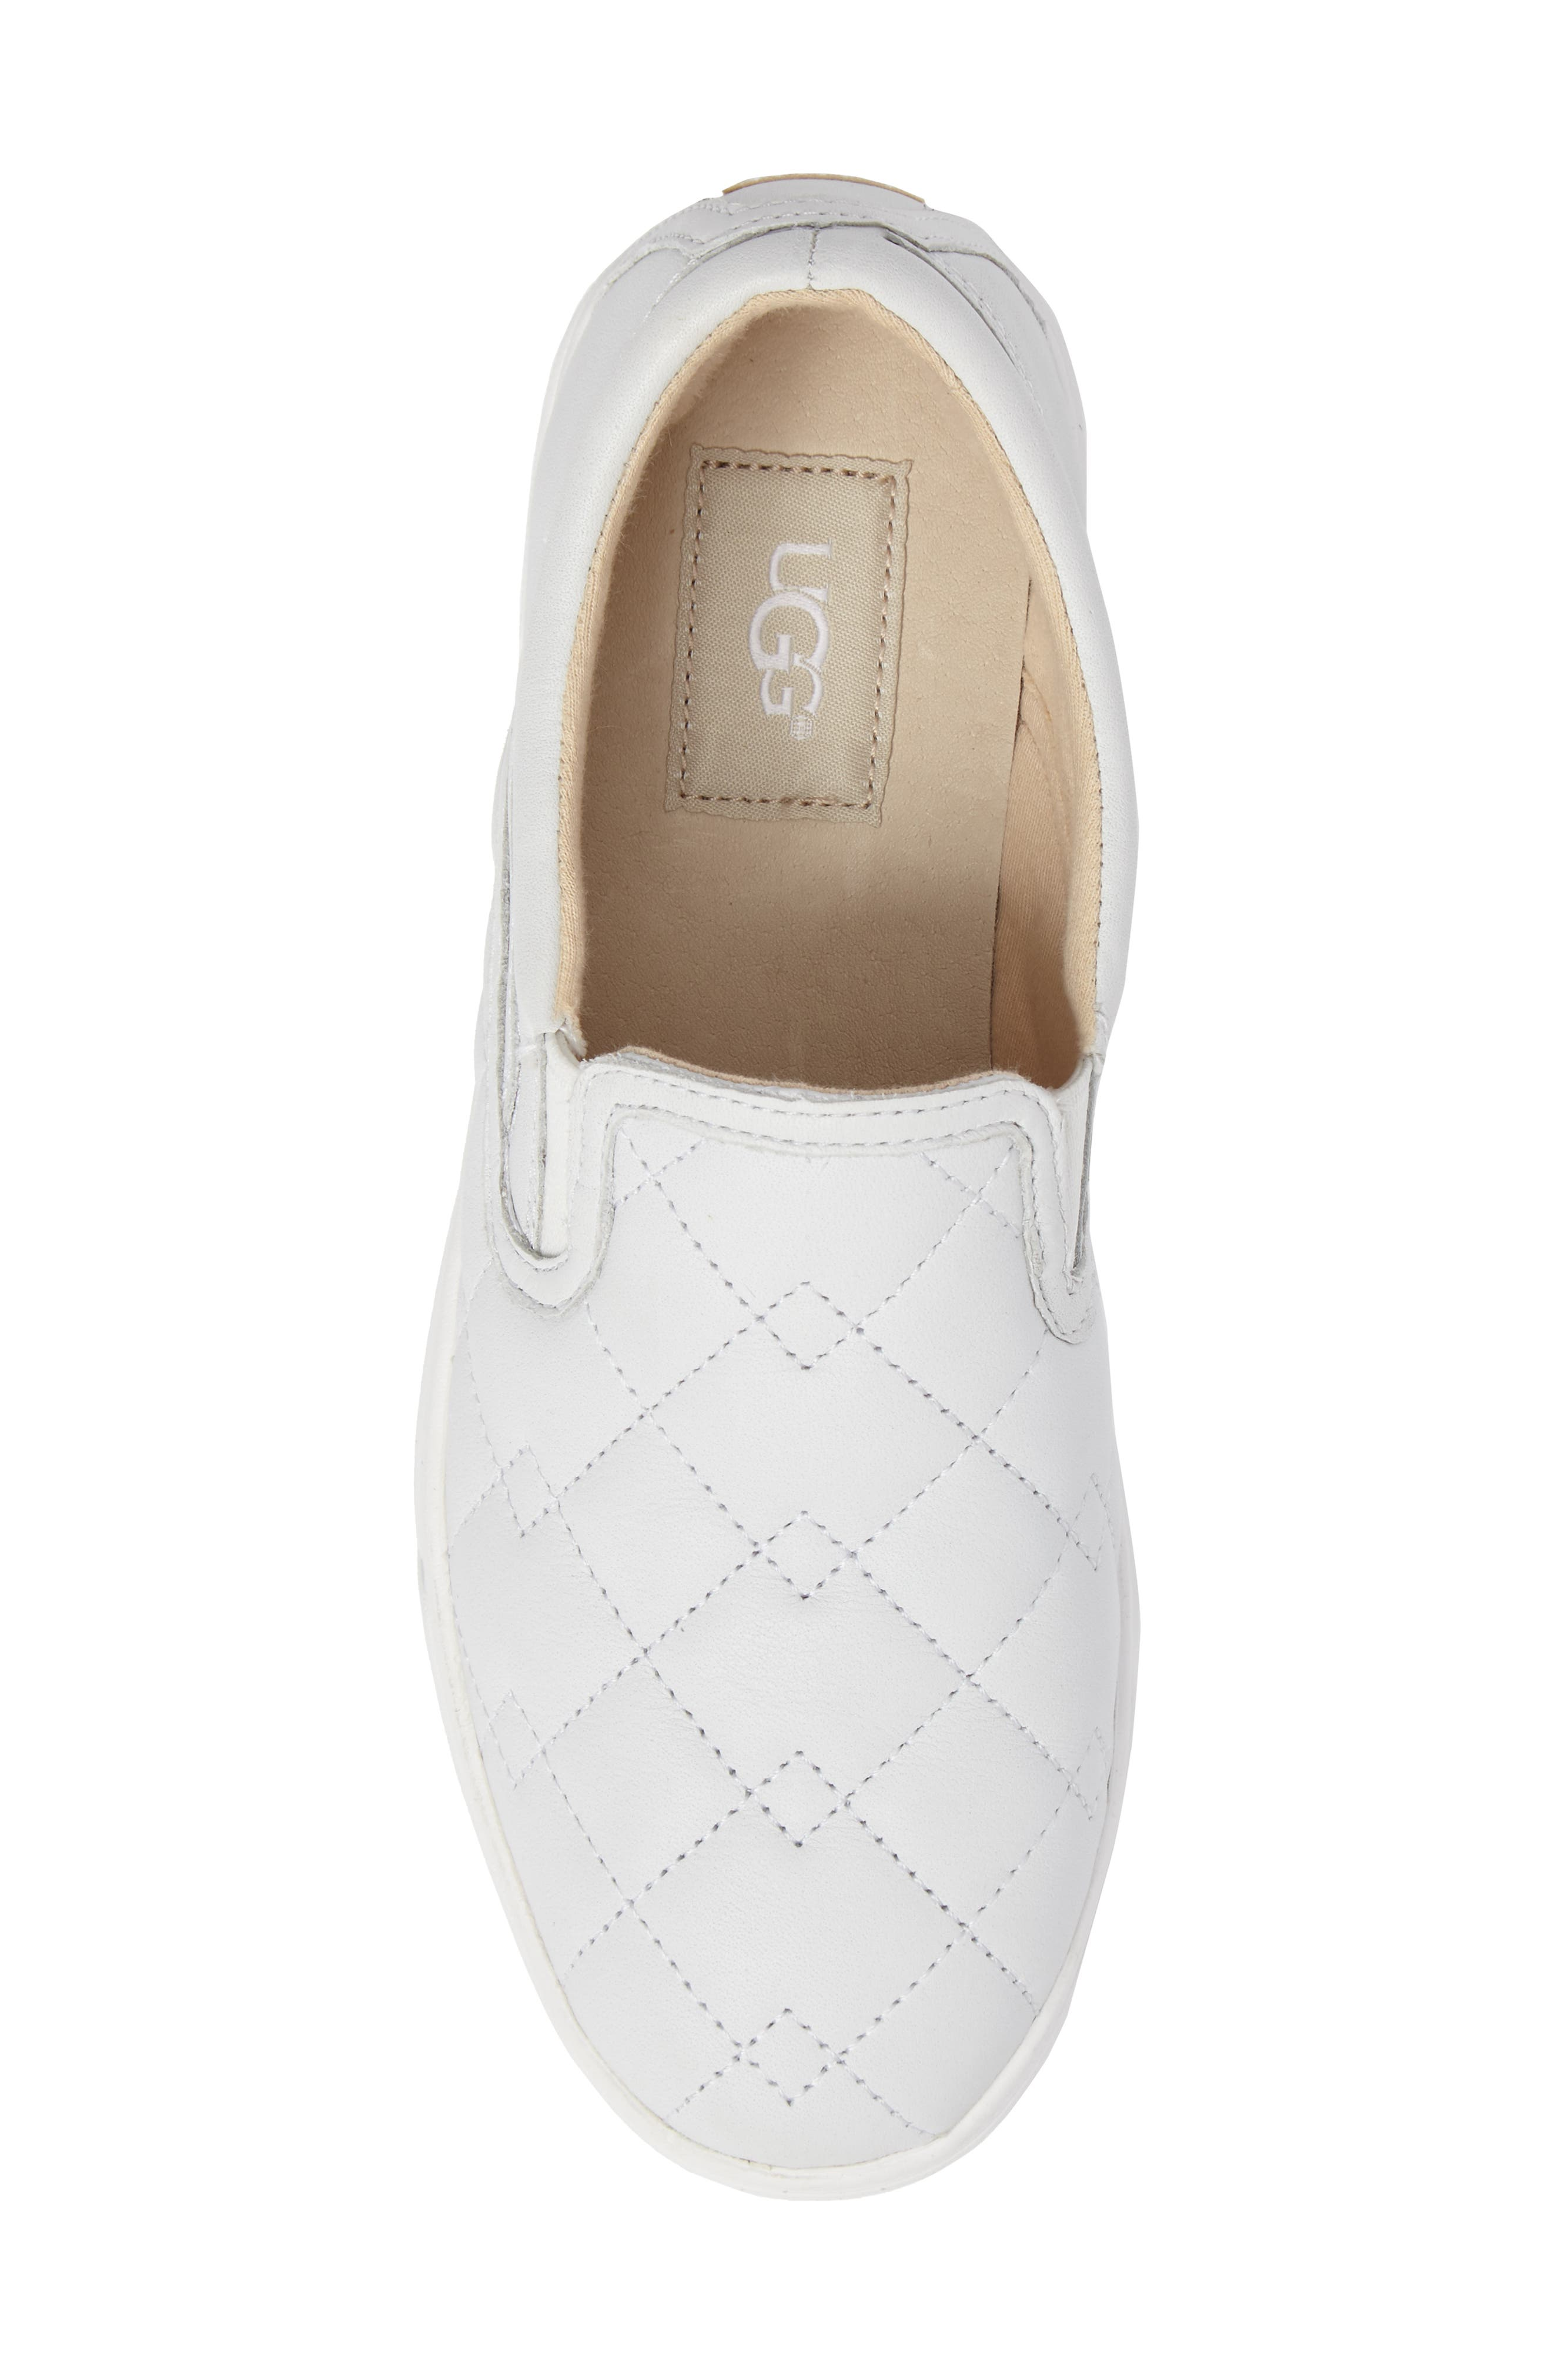 Fierce Deco Quilted Slip-On Sneaker,                             Alternate thumbnail 5, color,                             100